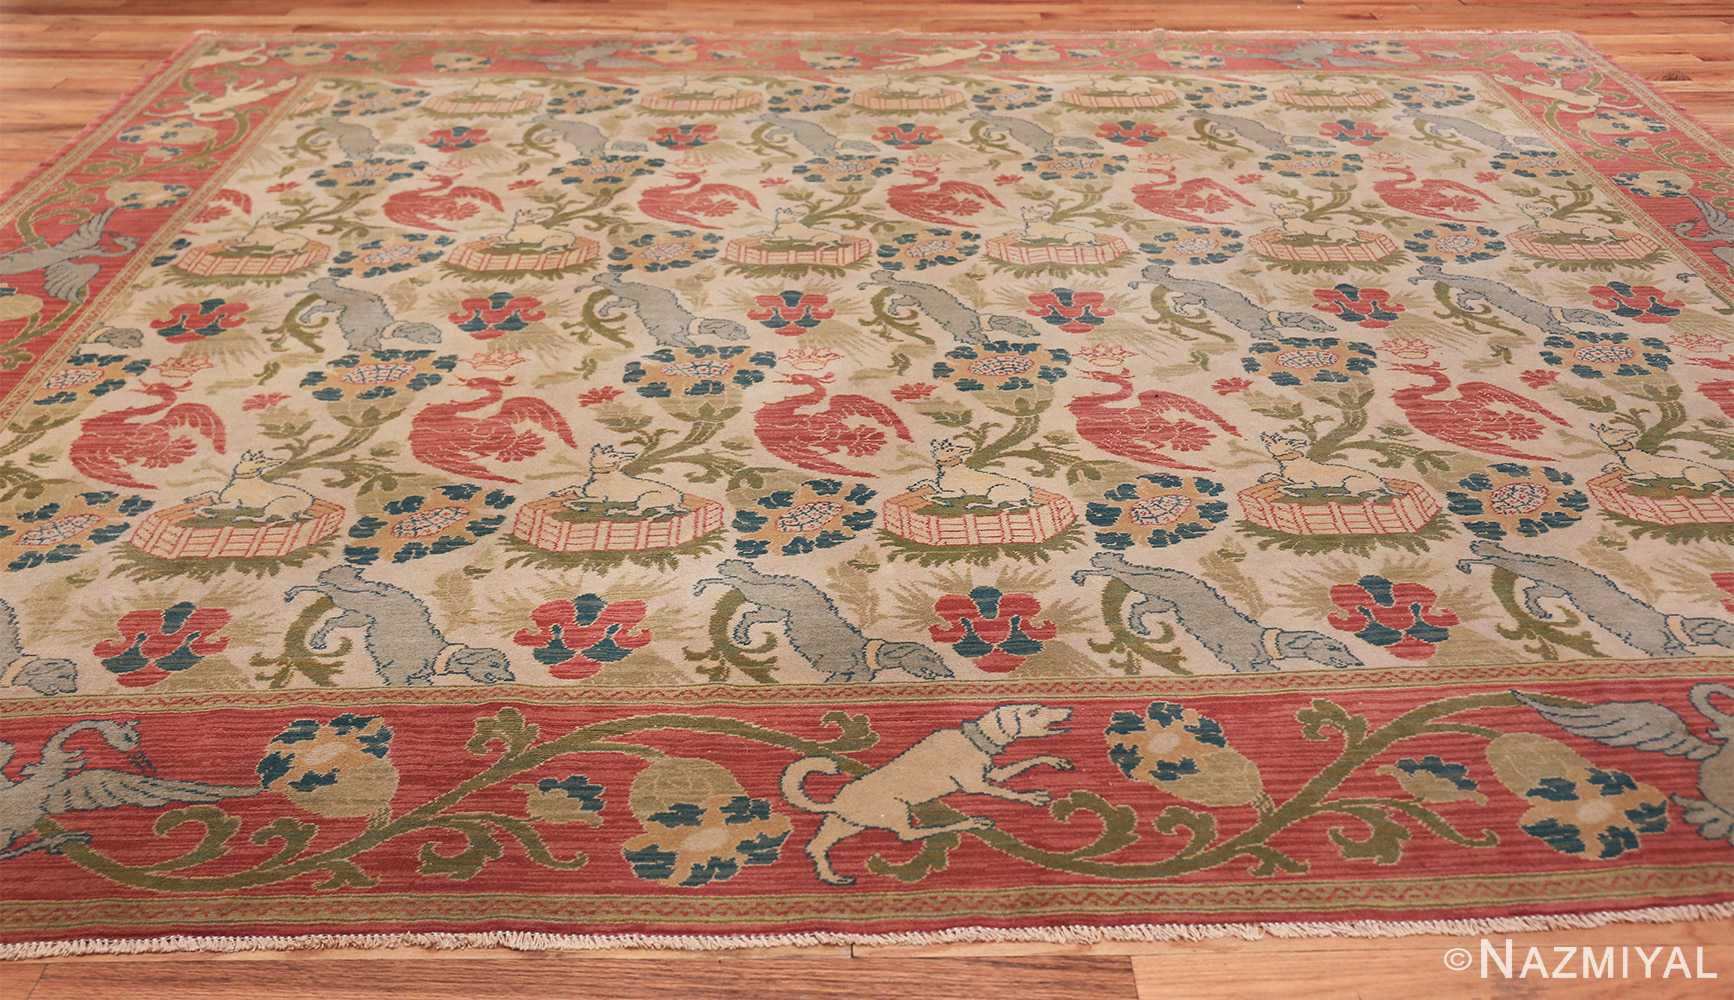 Antique Animal Motif Spanish Rug 49158 By Nazmiyal